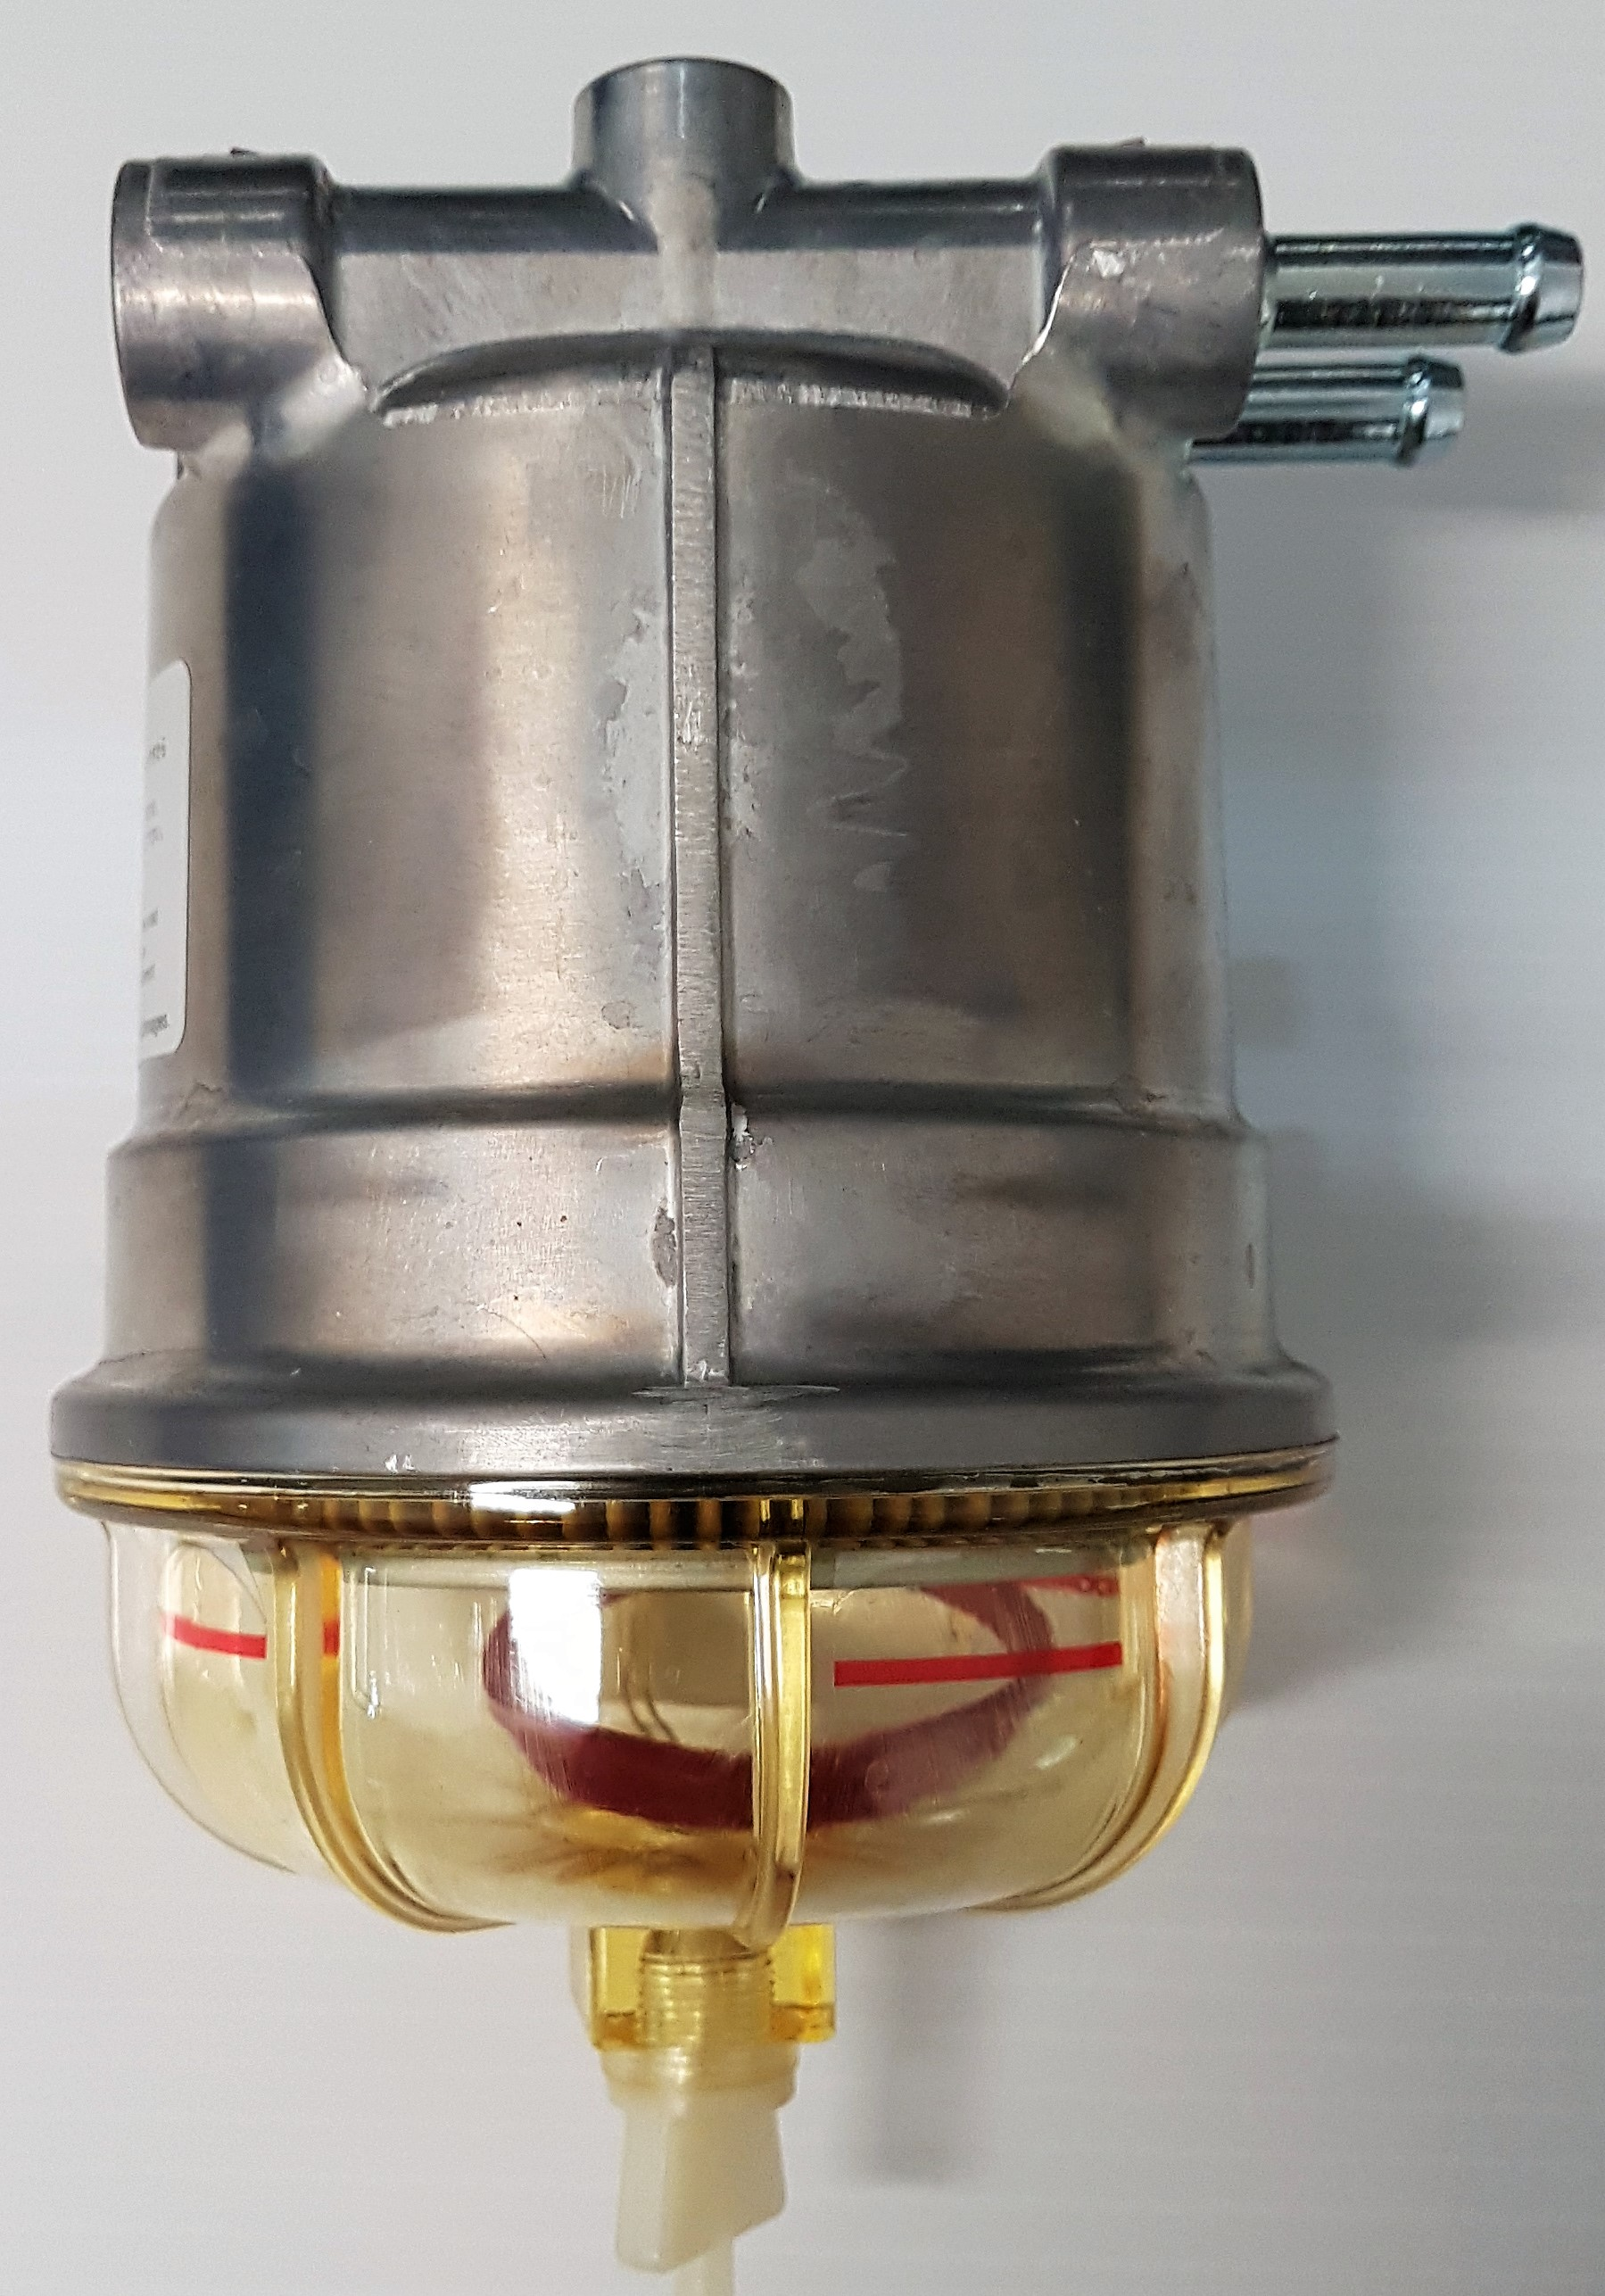 WATER SEPARATOR ASSEMBLY